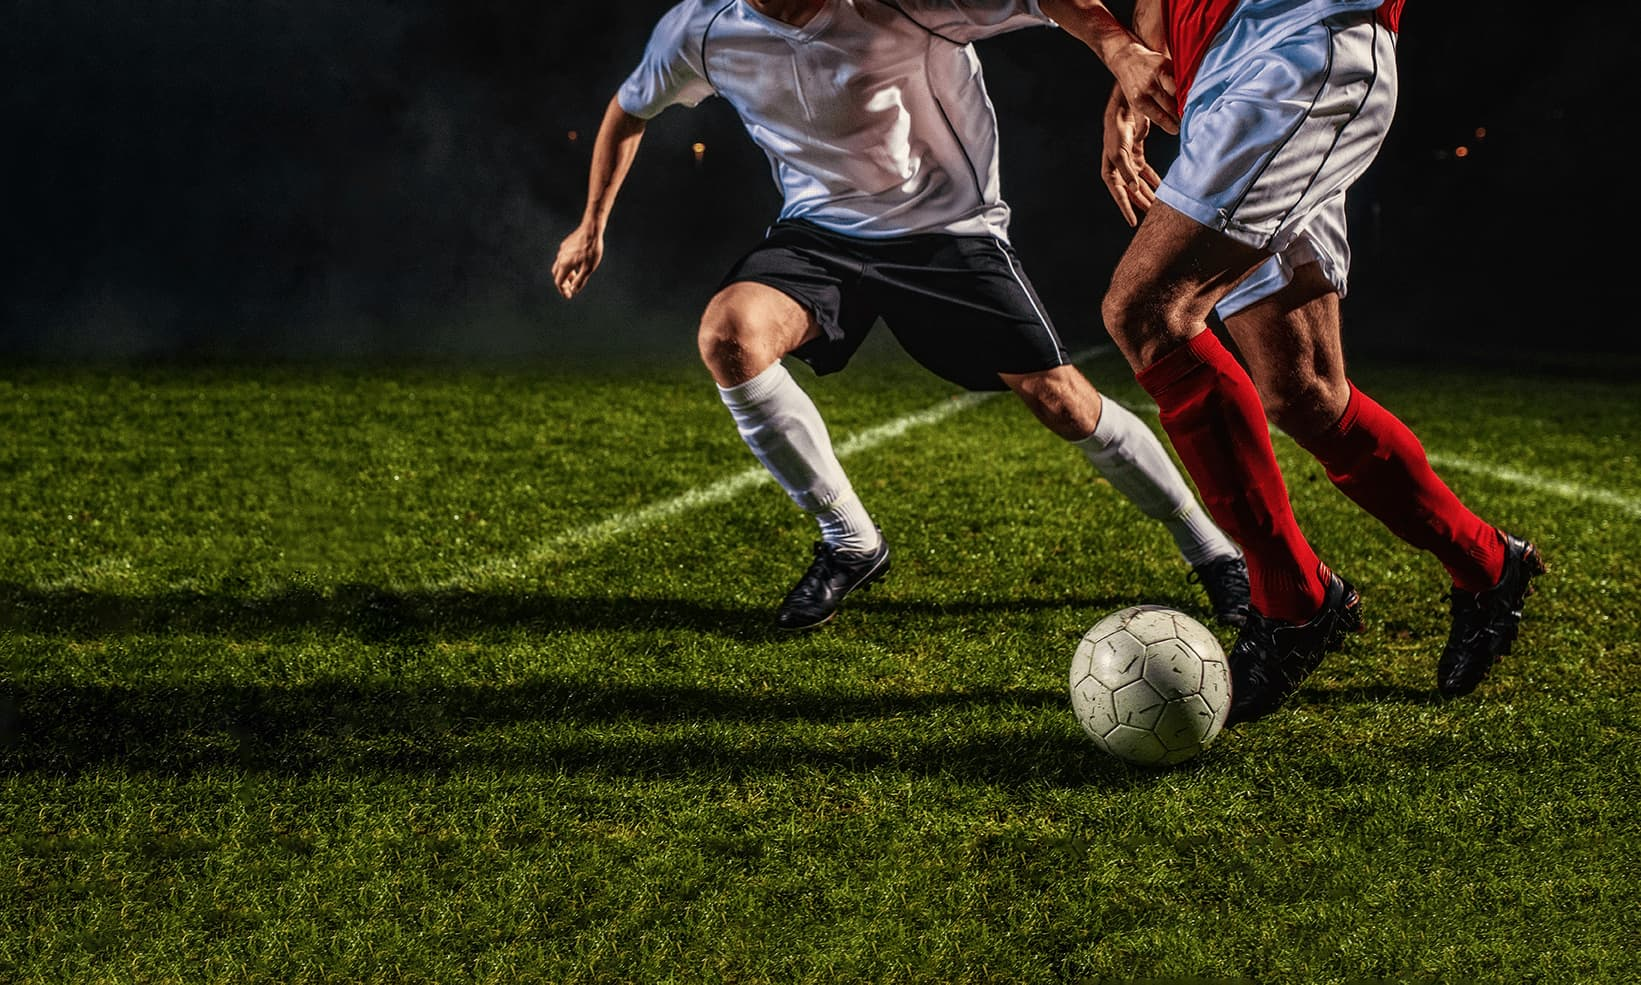 Two soccer players from opposing teams playing on grass field, at night, lit by floodlights